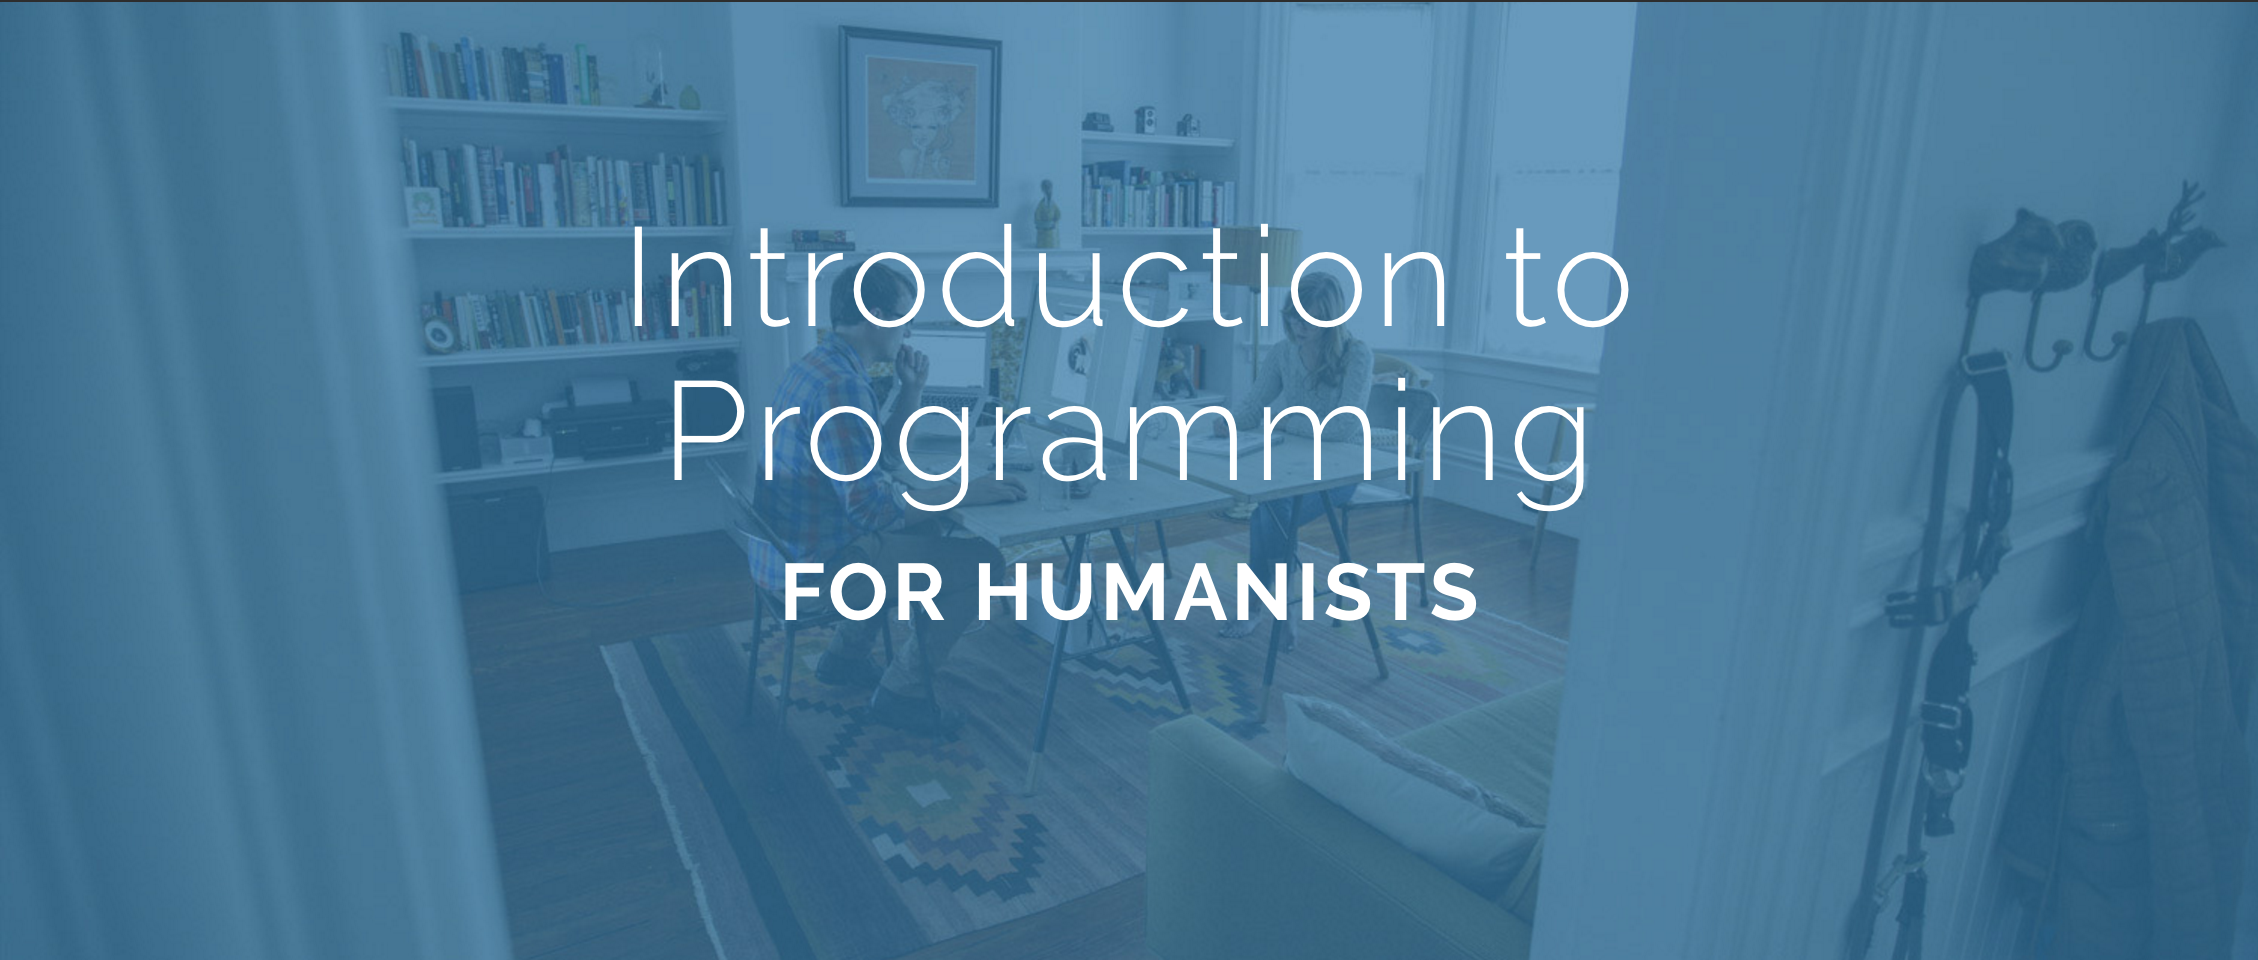 Humanities Programming course splash page.